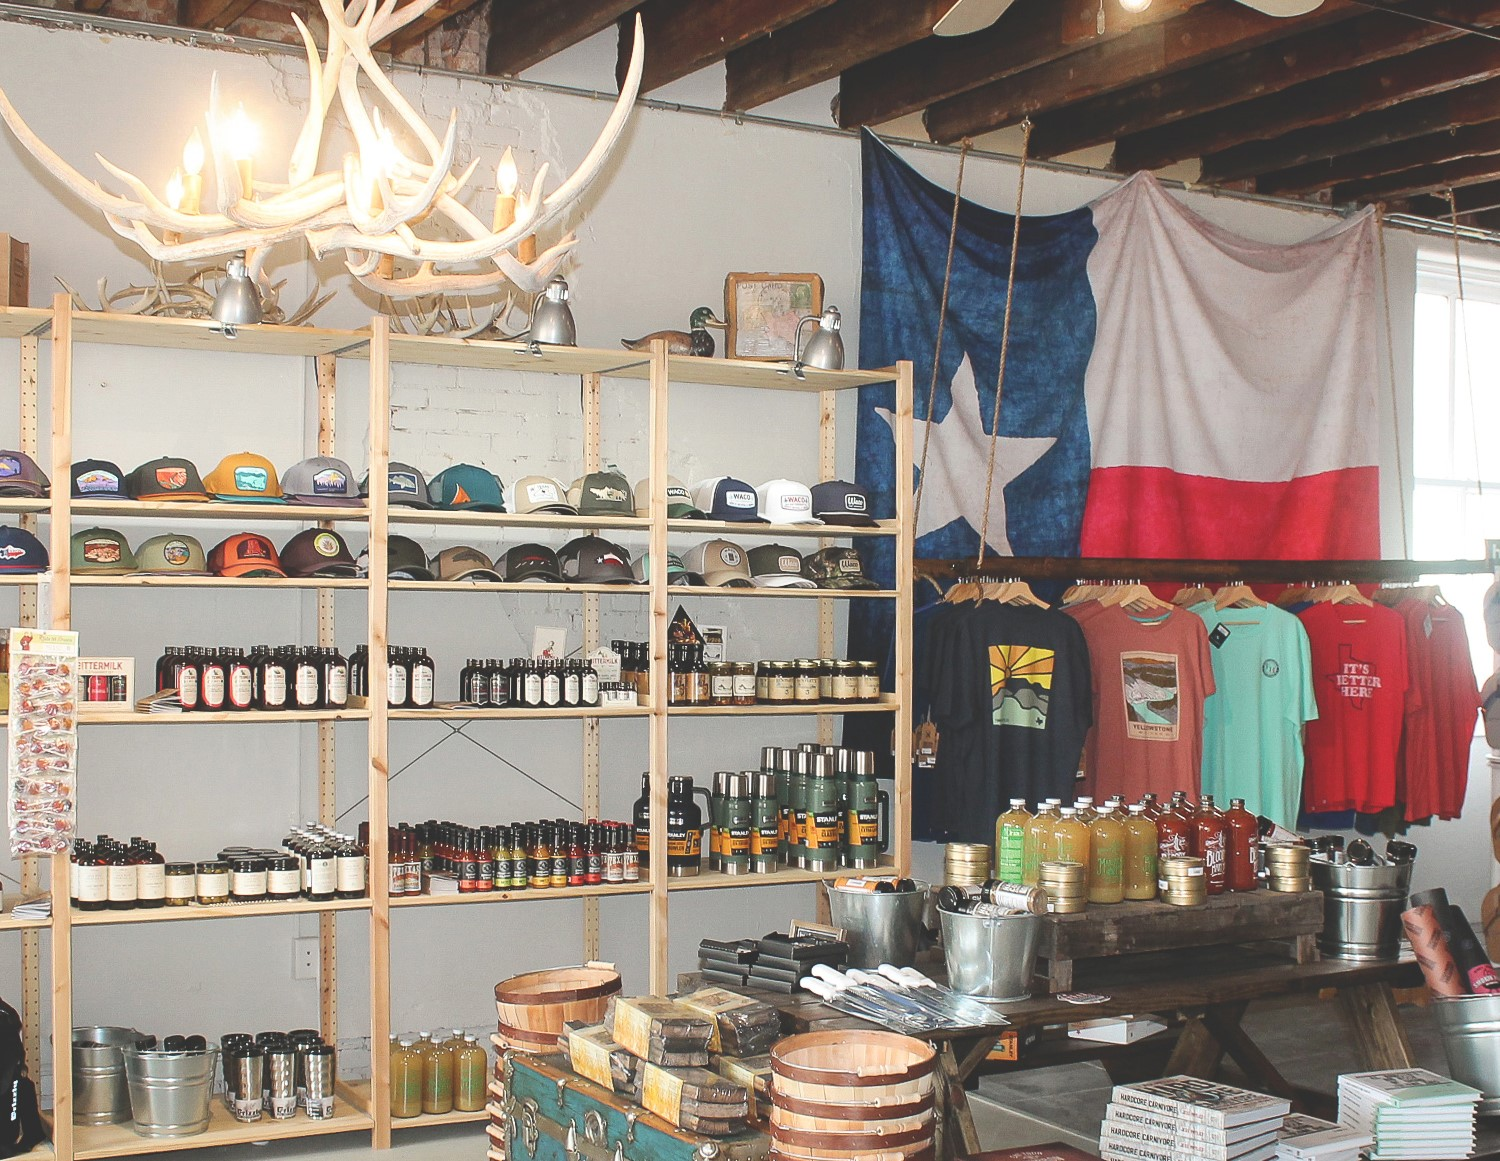 Brazos River Dry Goods